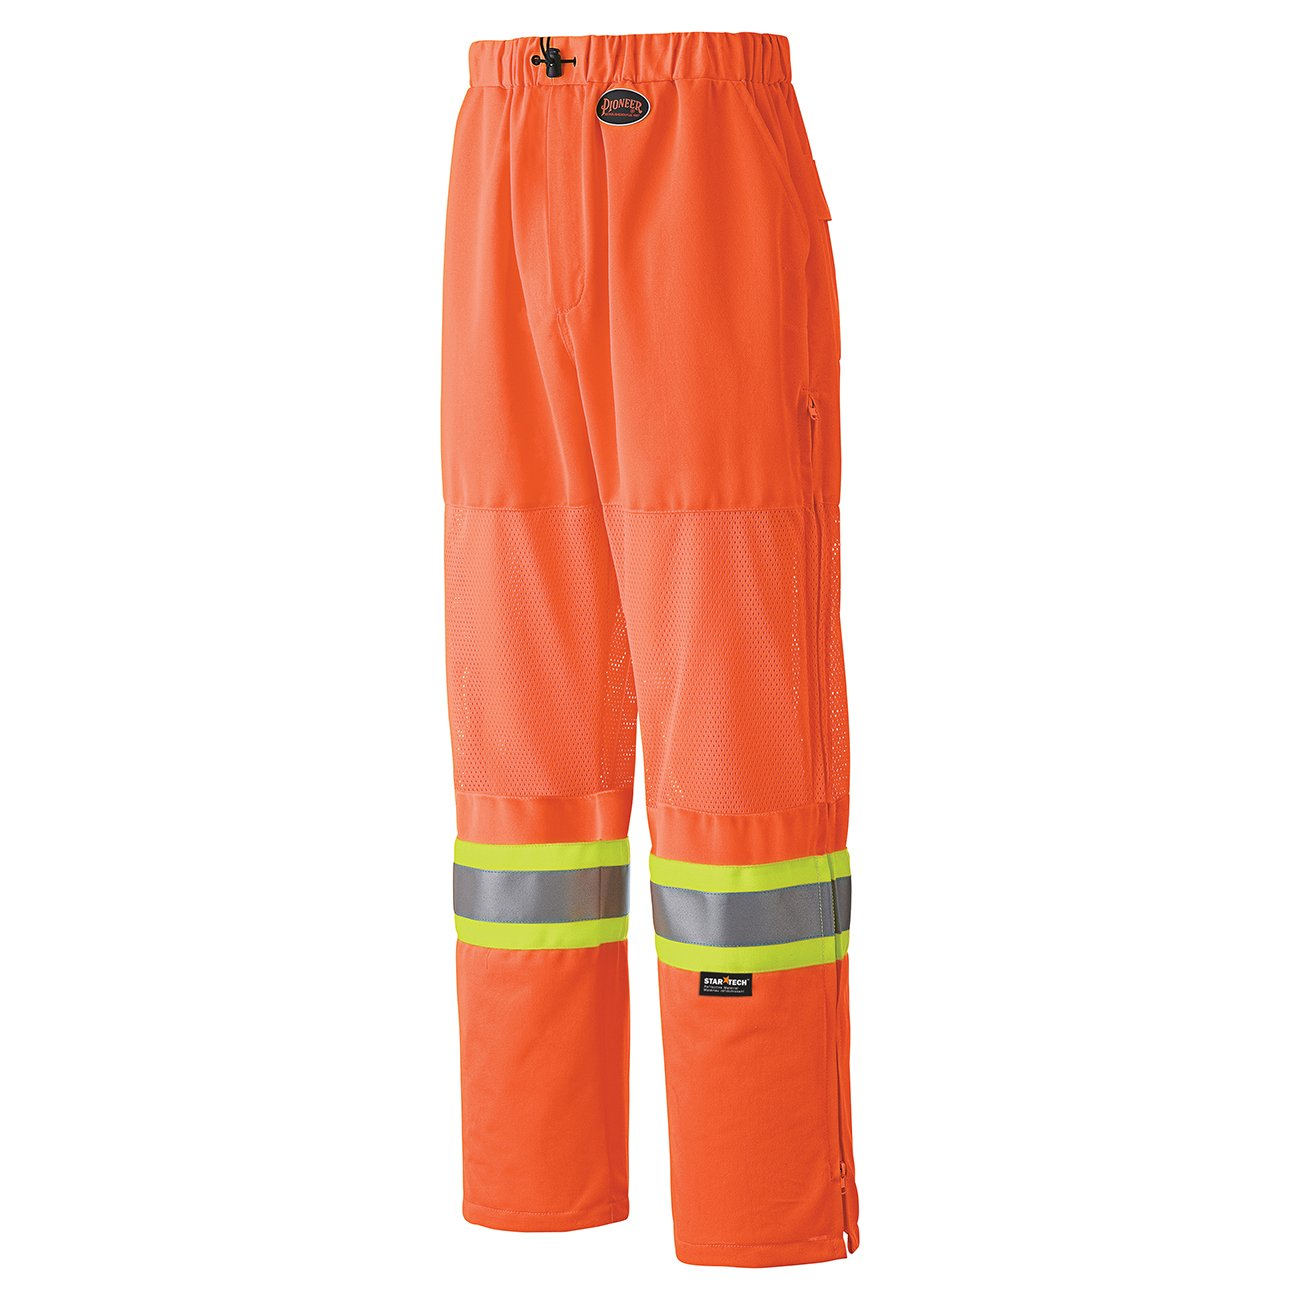 Pioneer V1070380-M Traffic Safety Work Pants - Easy Boot Access - 5 Pockets, Navy Blue, M